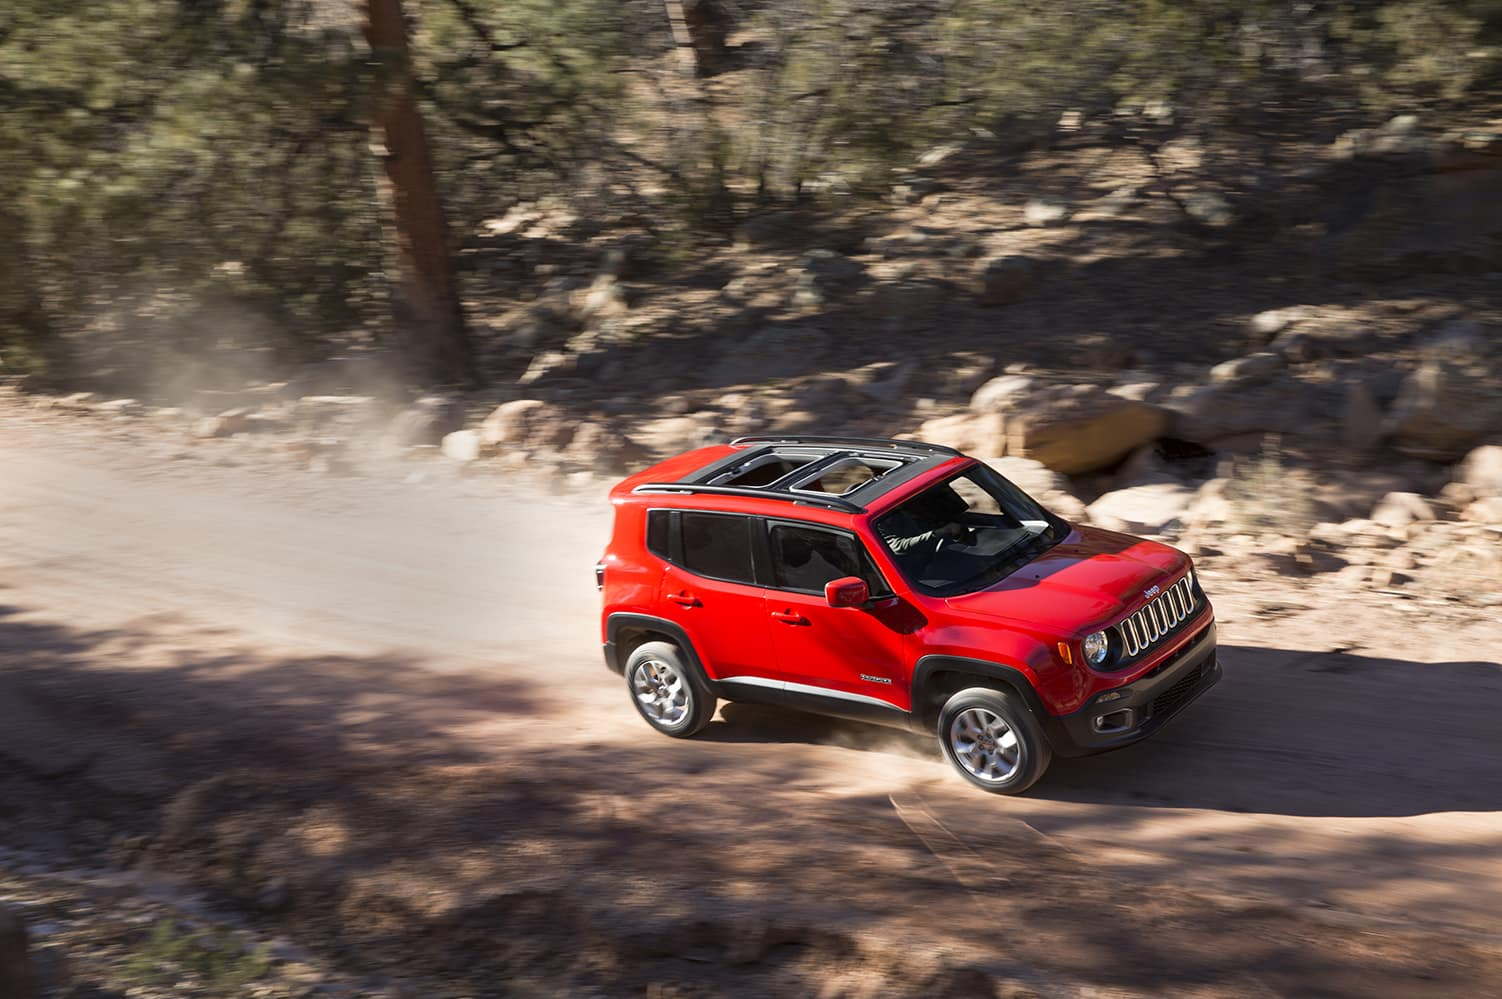 Compare the 2021 Jeep Renegade and the 2021 Chevrolet Trailblazer at Carolina CDJR in Elizabeth City, NC | 2021 Jeep Renegade driving on dirt trail